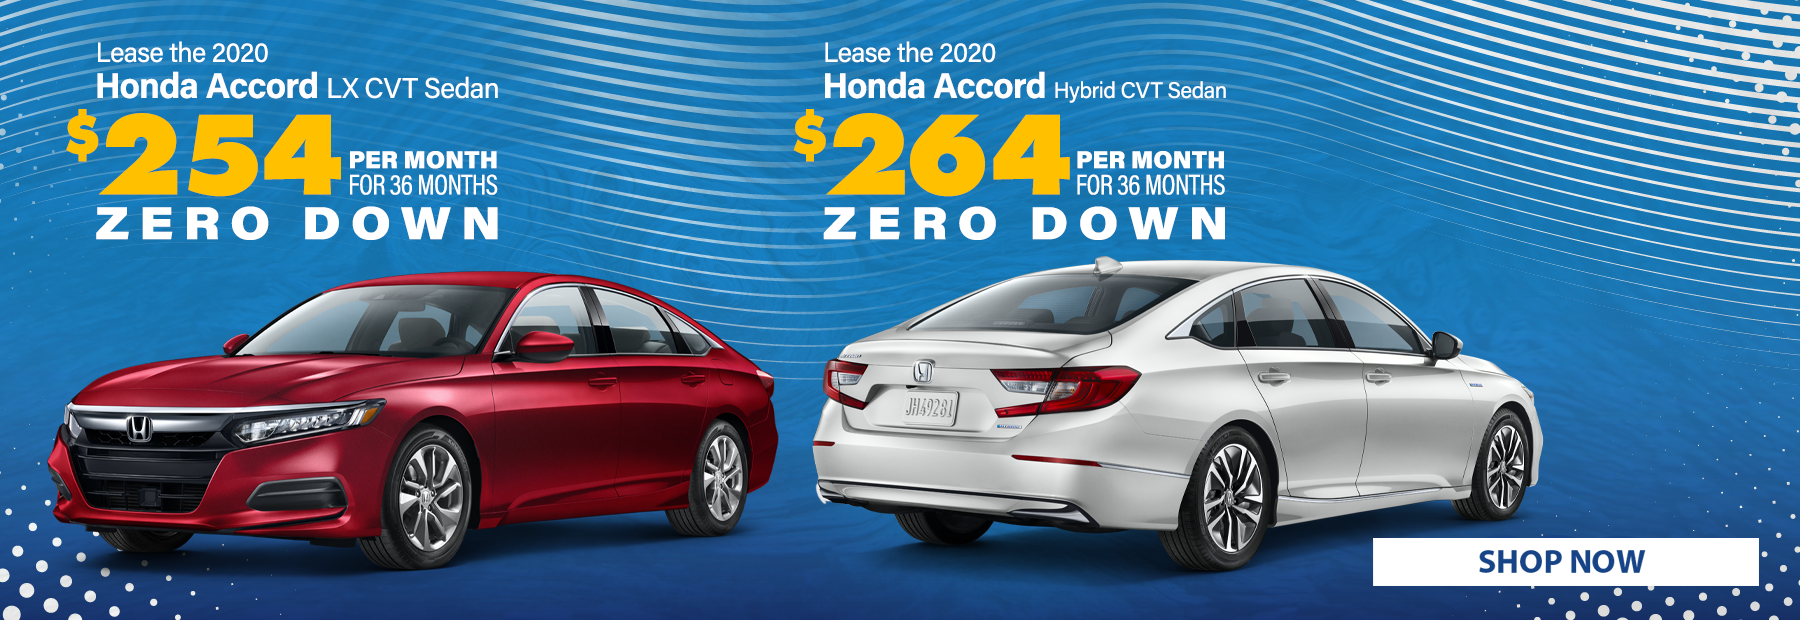 Lease a 2020 Honda Accord LX CVT Sedan &or 2020 Honda Accord Hybrid CVT Sedan